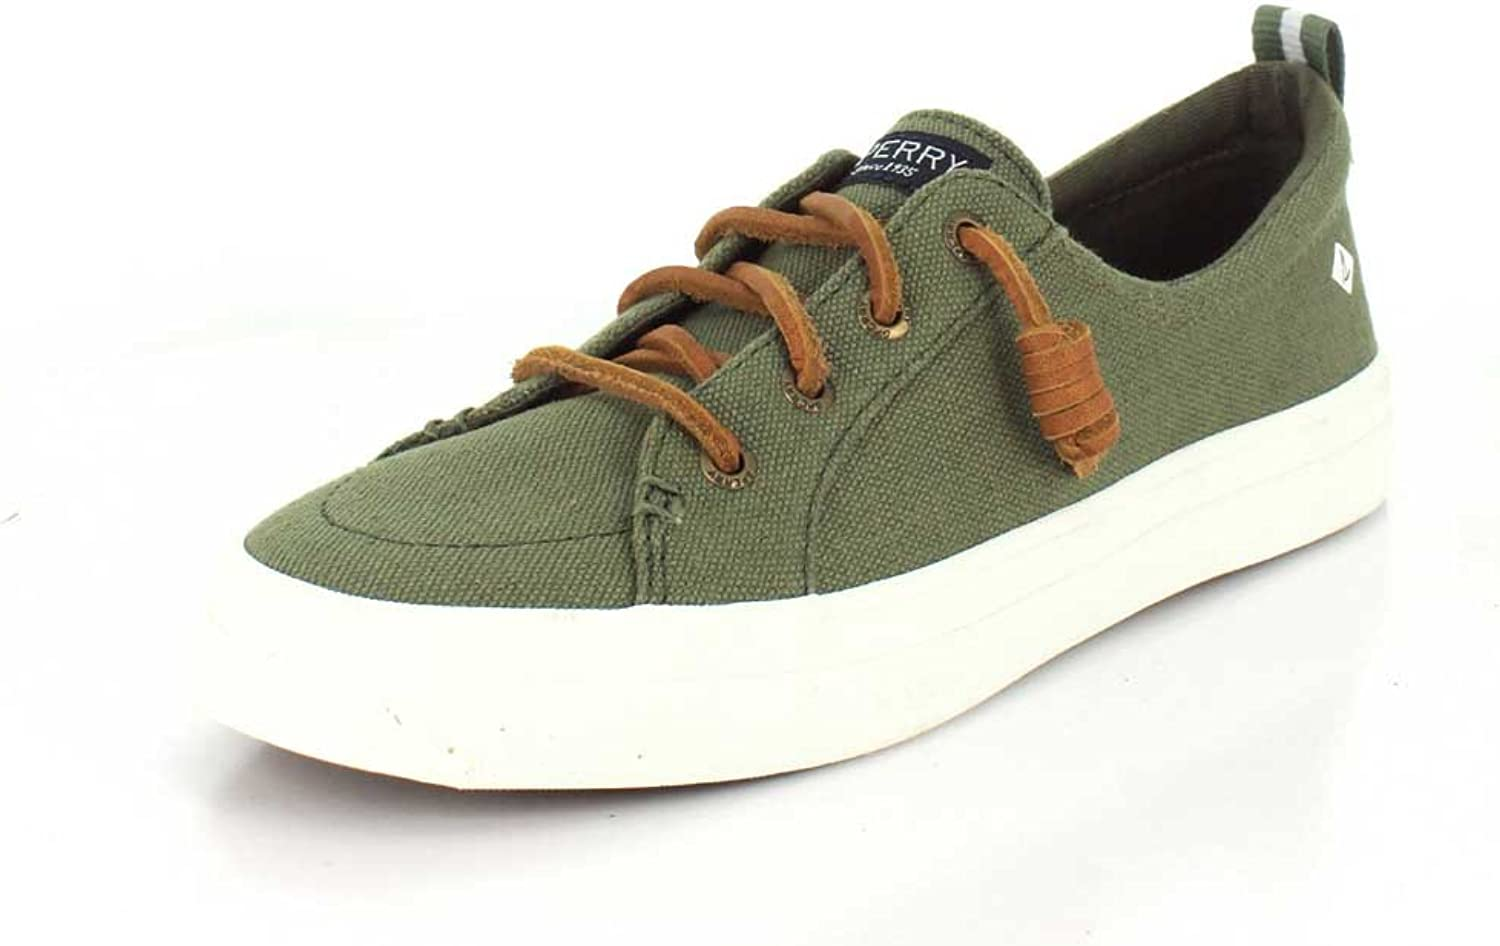 Sperry Women's Crest Vibe Linen shoes